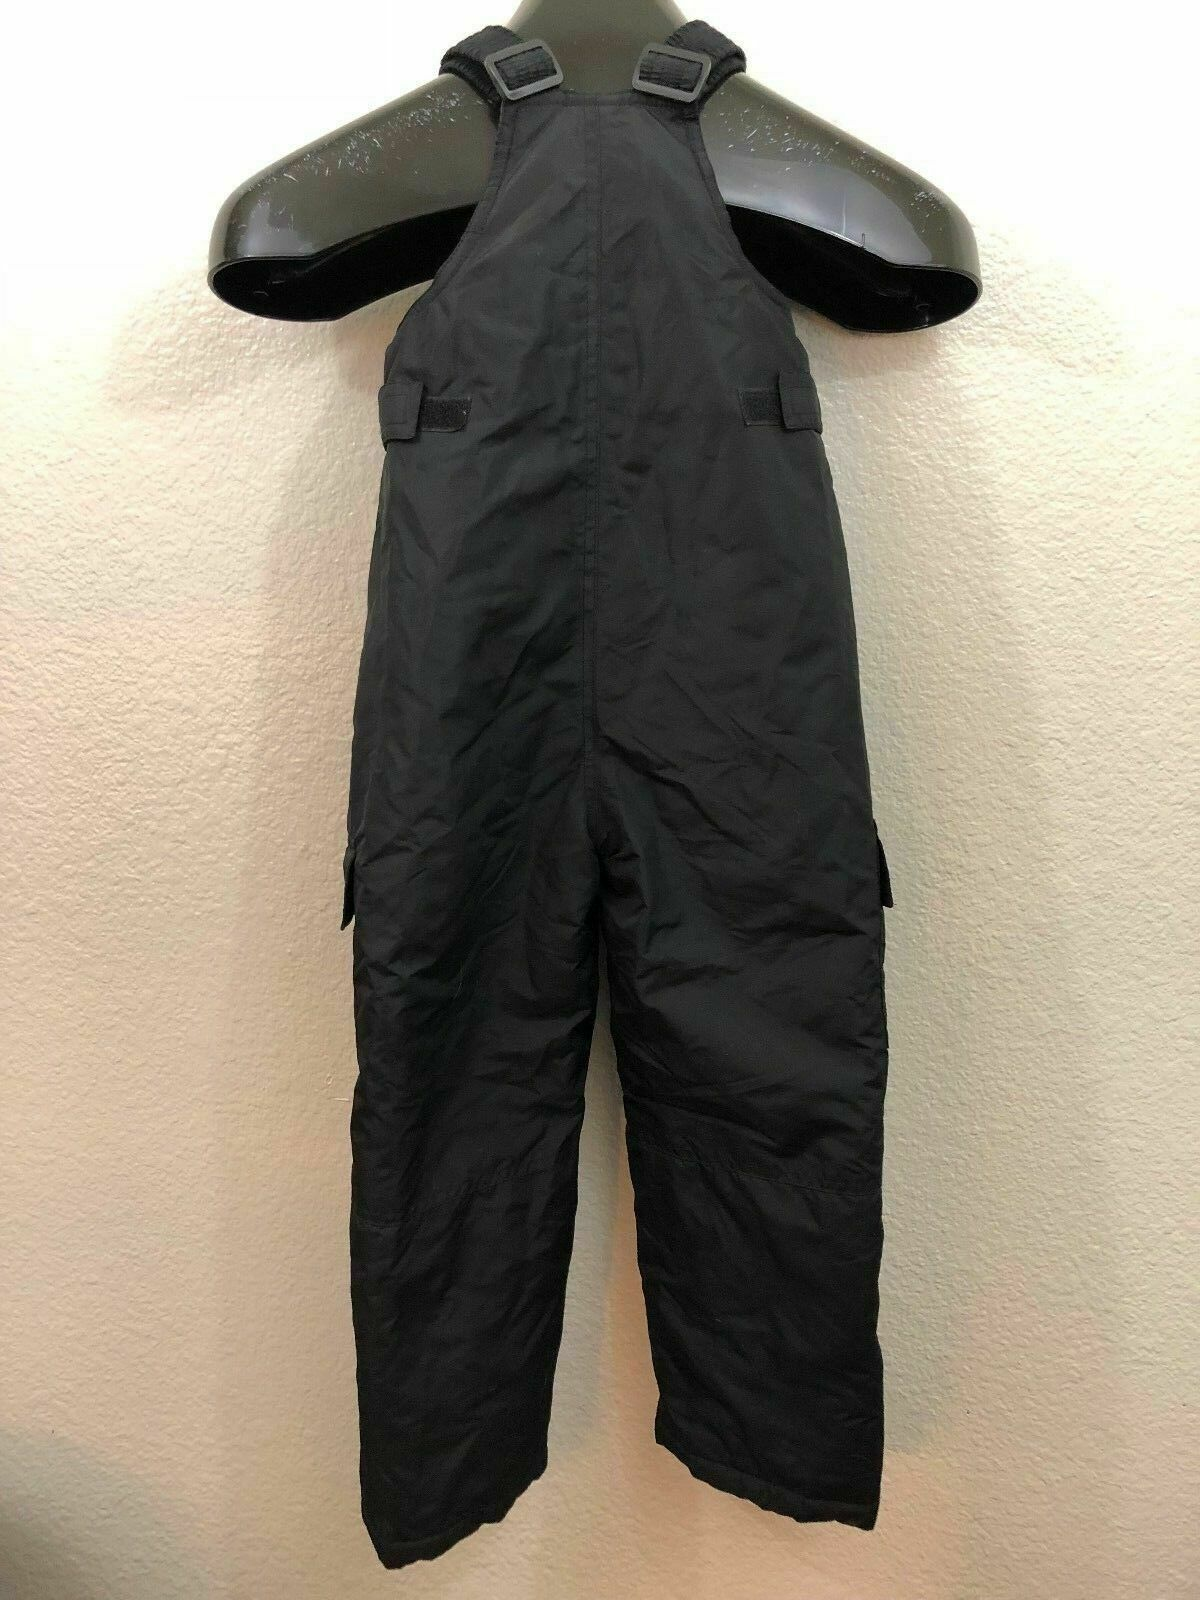 Lion Force Protection Black Youth Kids Ski Bibs Size Small 4